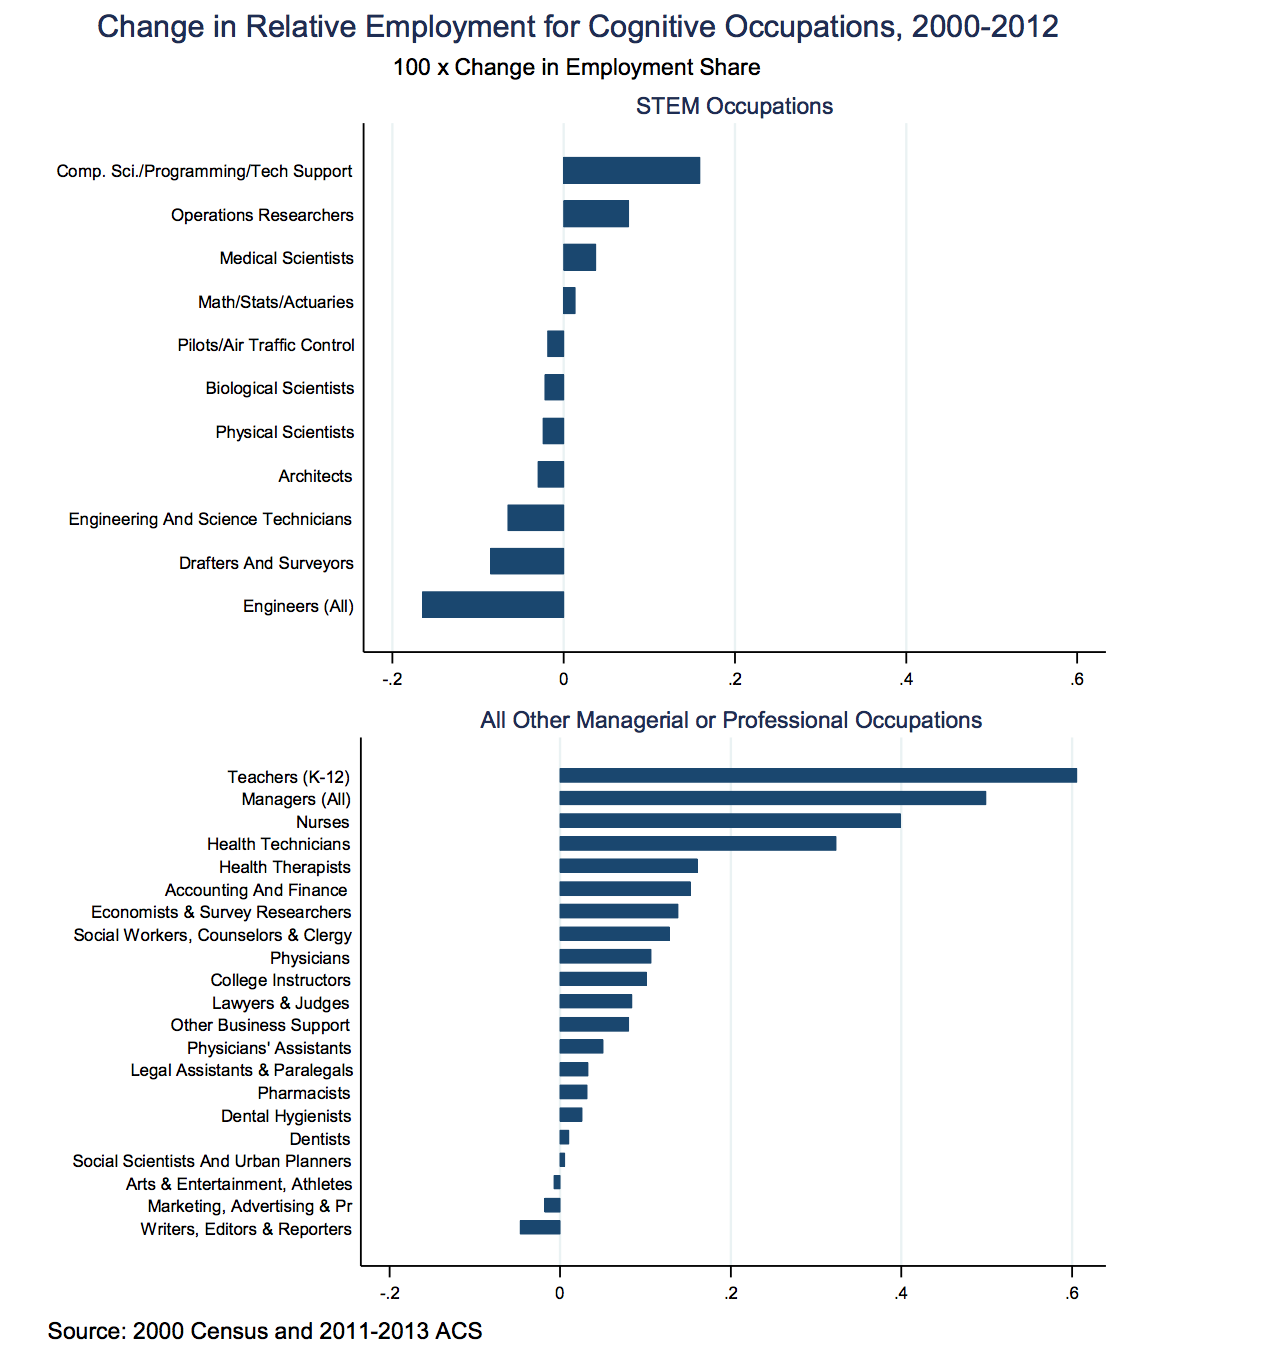 Change in Relative Employment for Cognitive Occupations